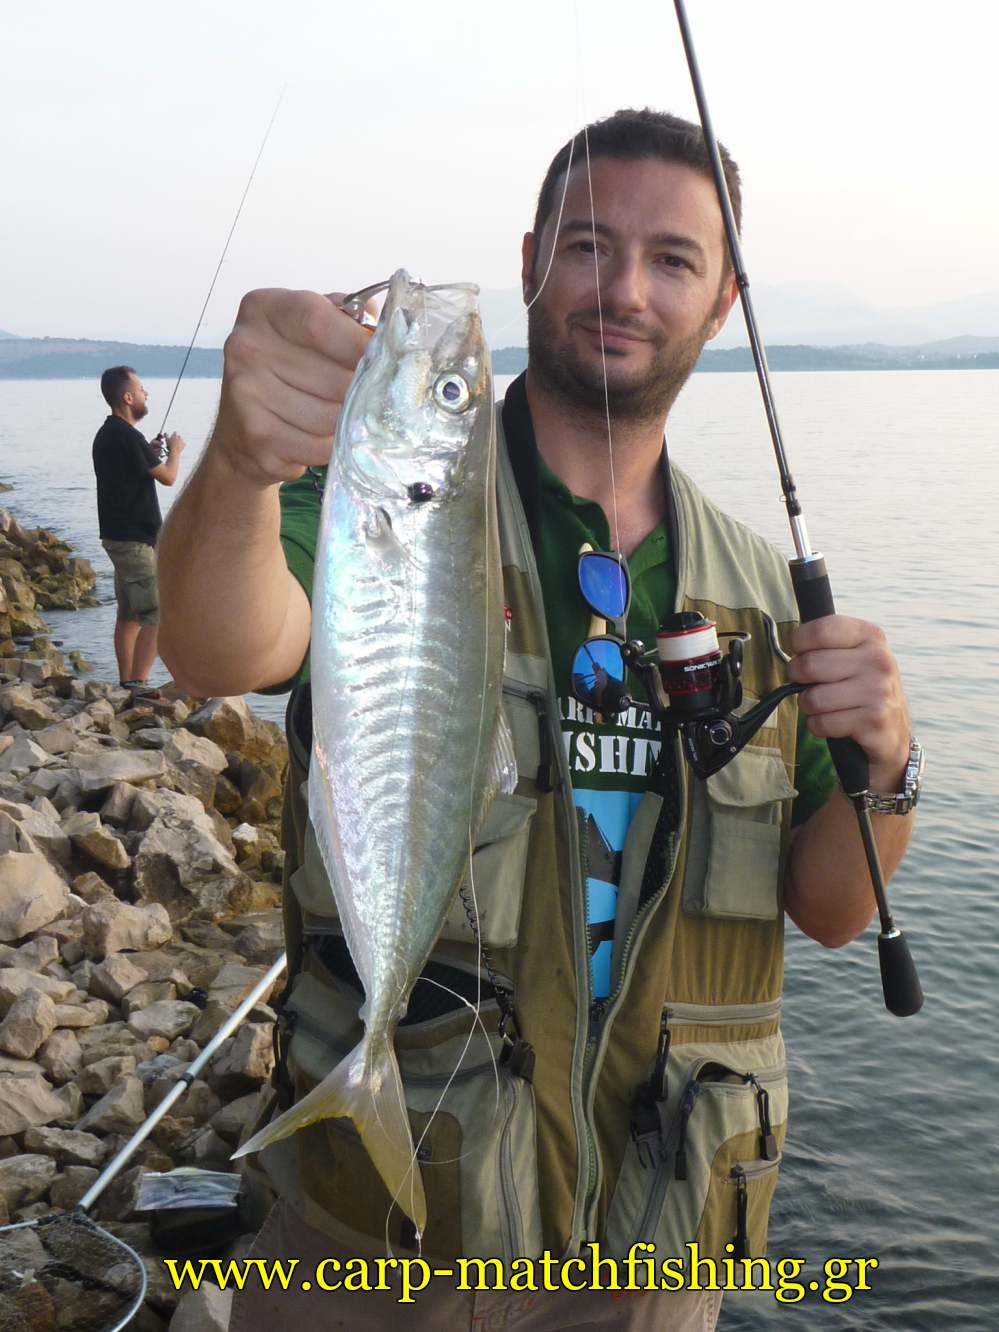 light-rock-fishing-for-mackerel-sfaltos-sonik-avx-carpmatchfishing